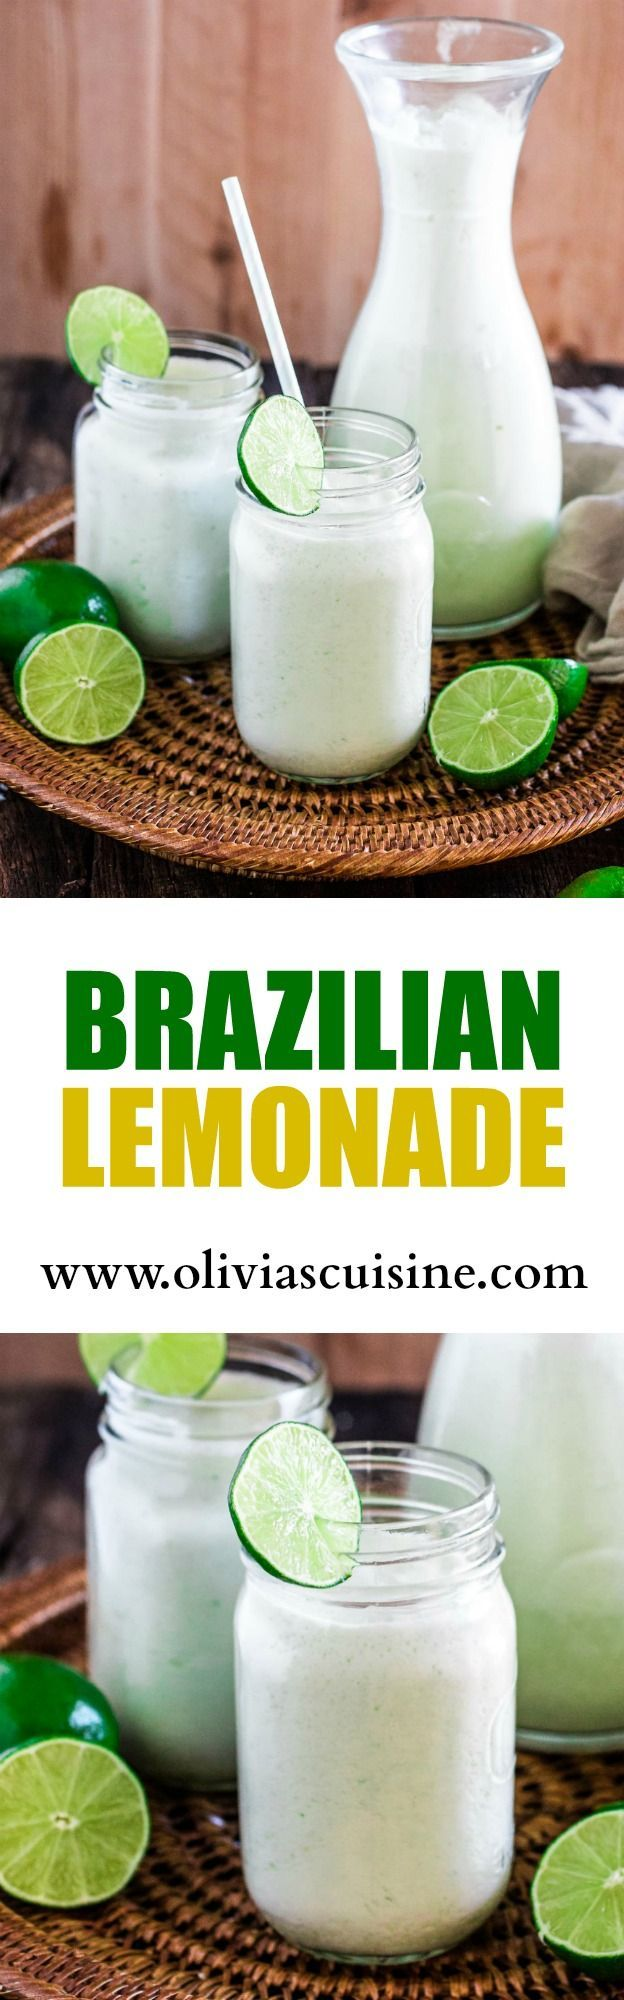 Brazilian Lemonade | http://www.oliviascuisine.com | The creamiest and sweetest lemonade (or limeade) you have ever tried. The secret? Sweet condensed milk. Sweet just like Brazilians like it!